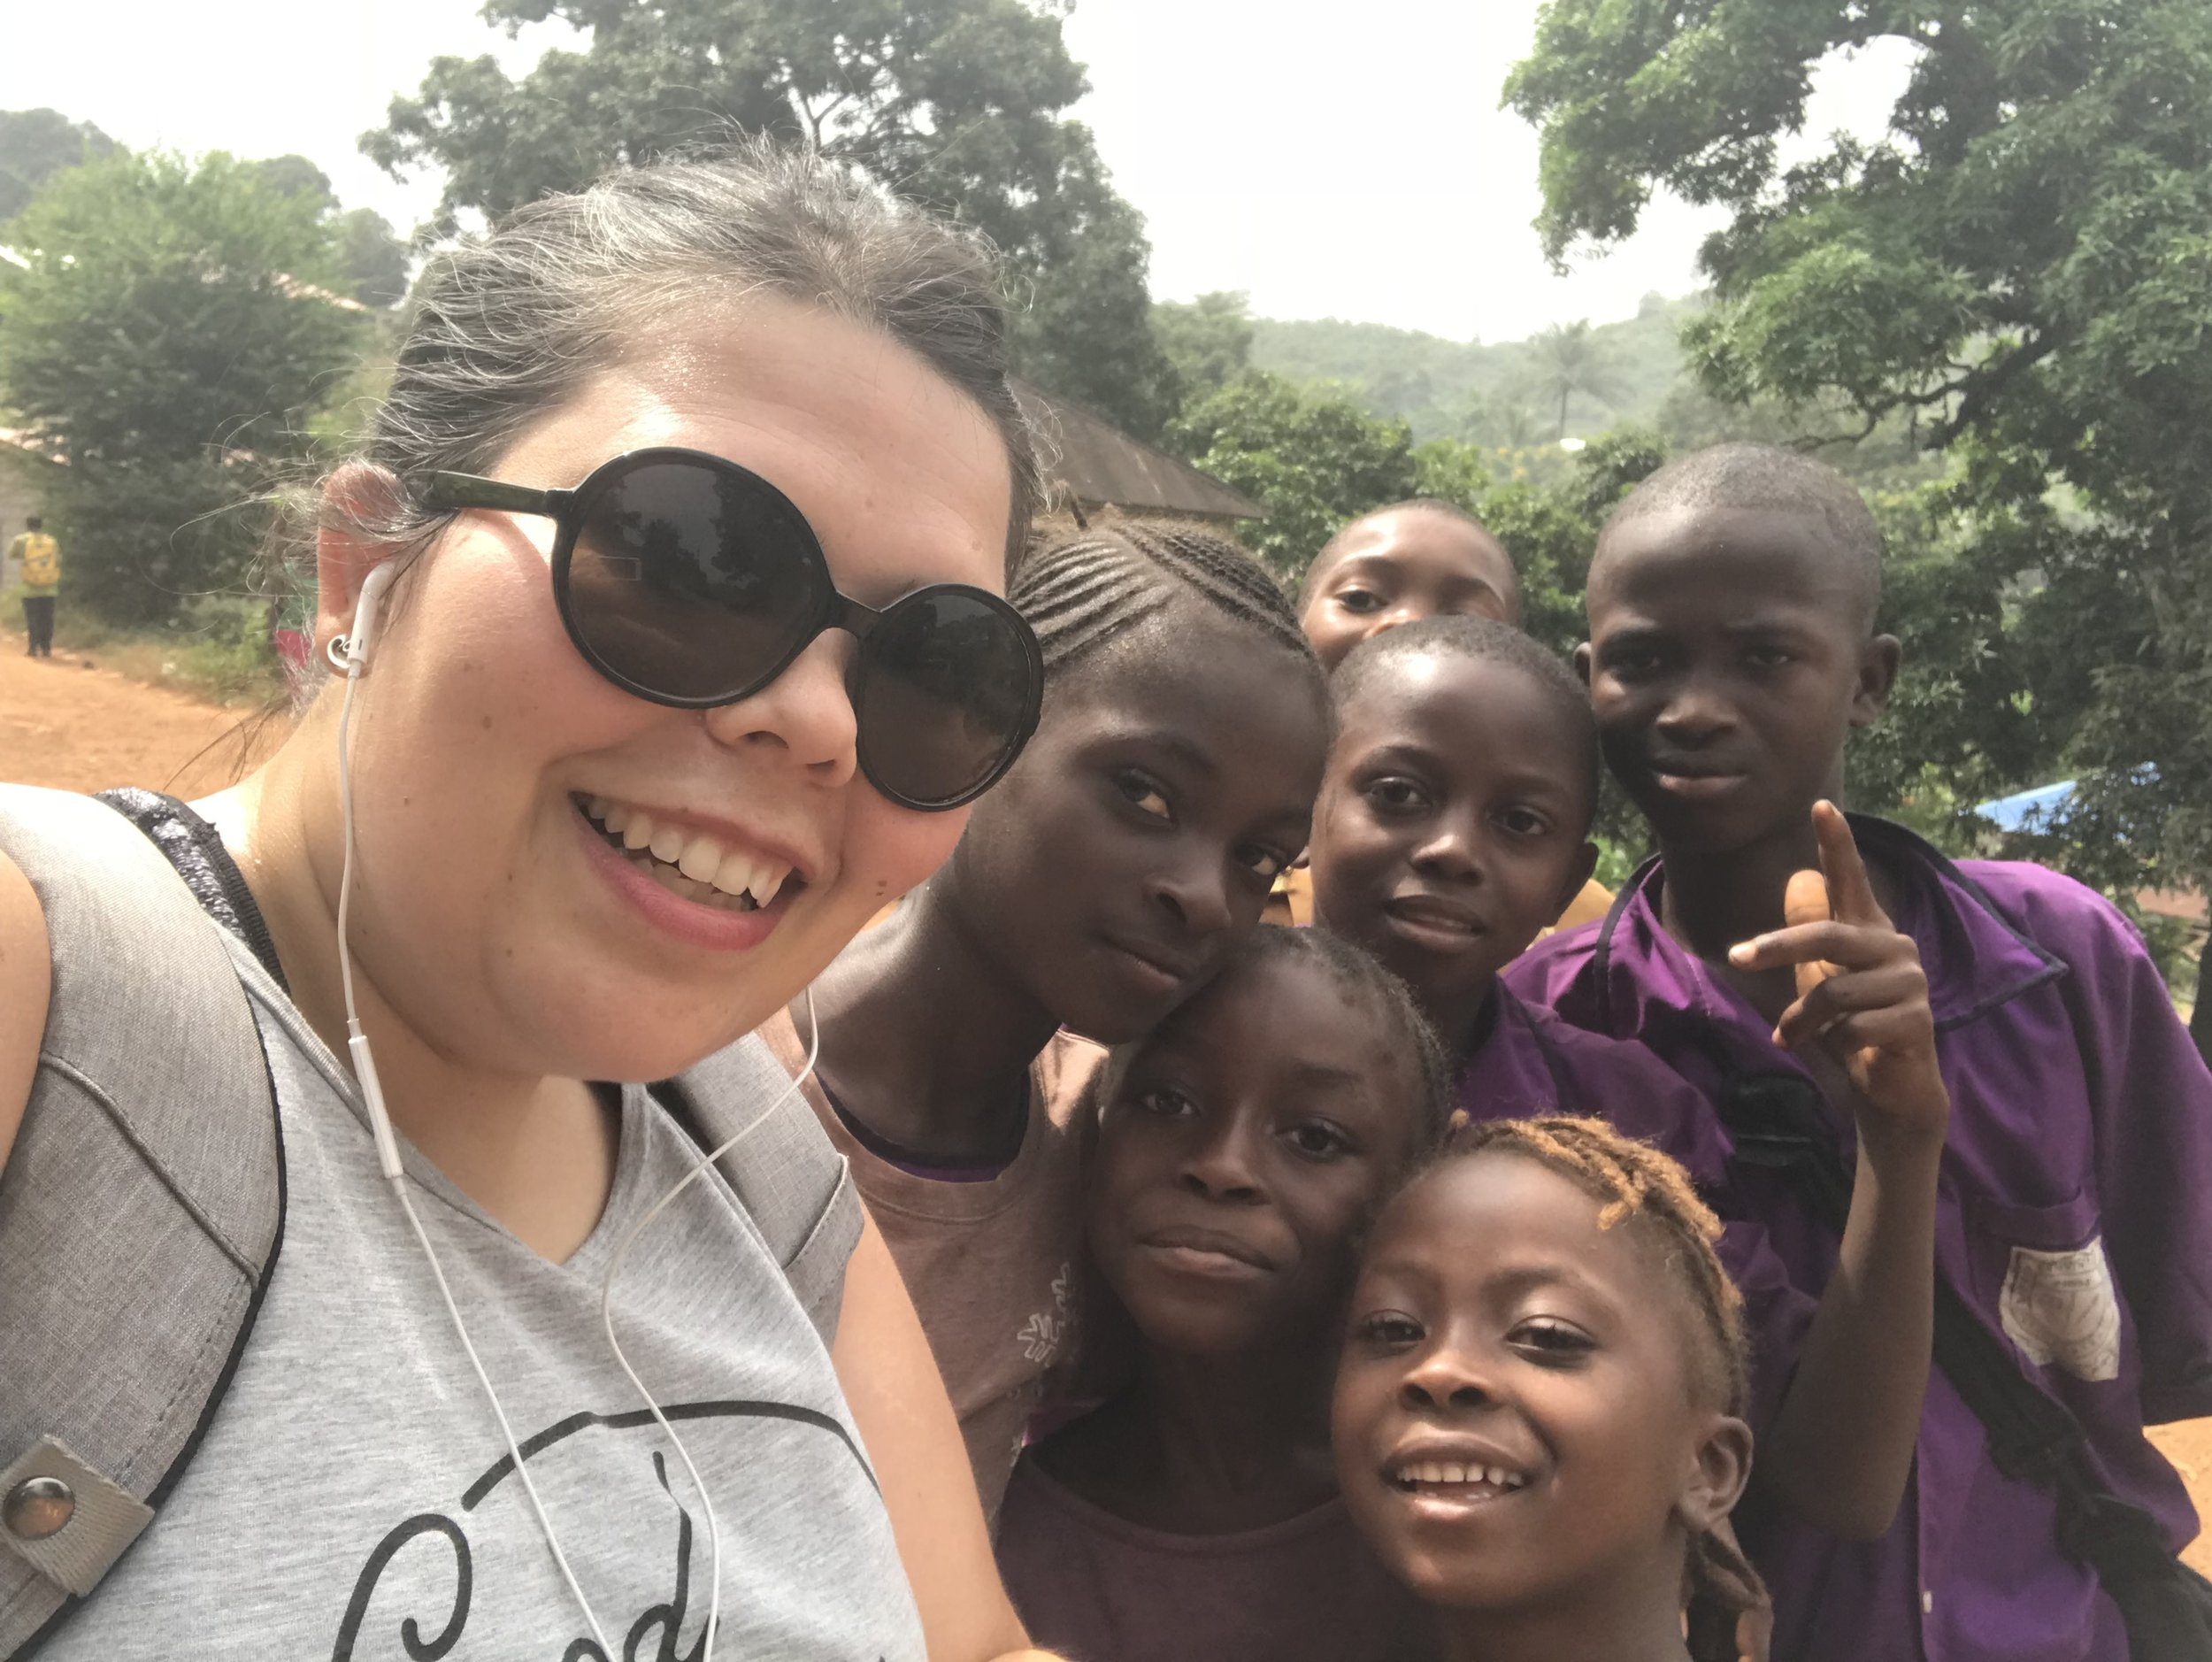 Selfie with the neighborhood kids. Today two children ran up to me from across the street and hugged me. It was the sweetest.